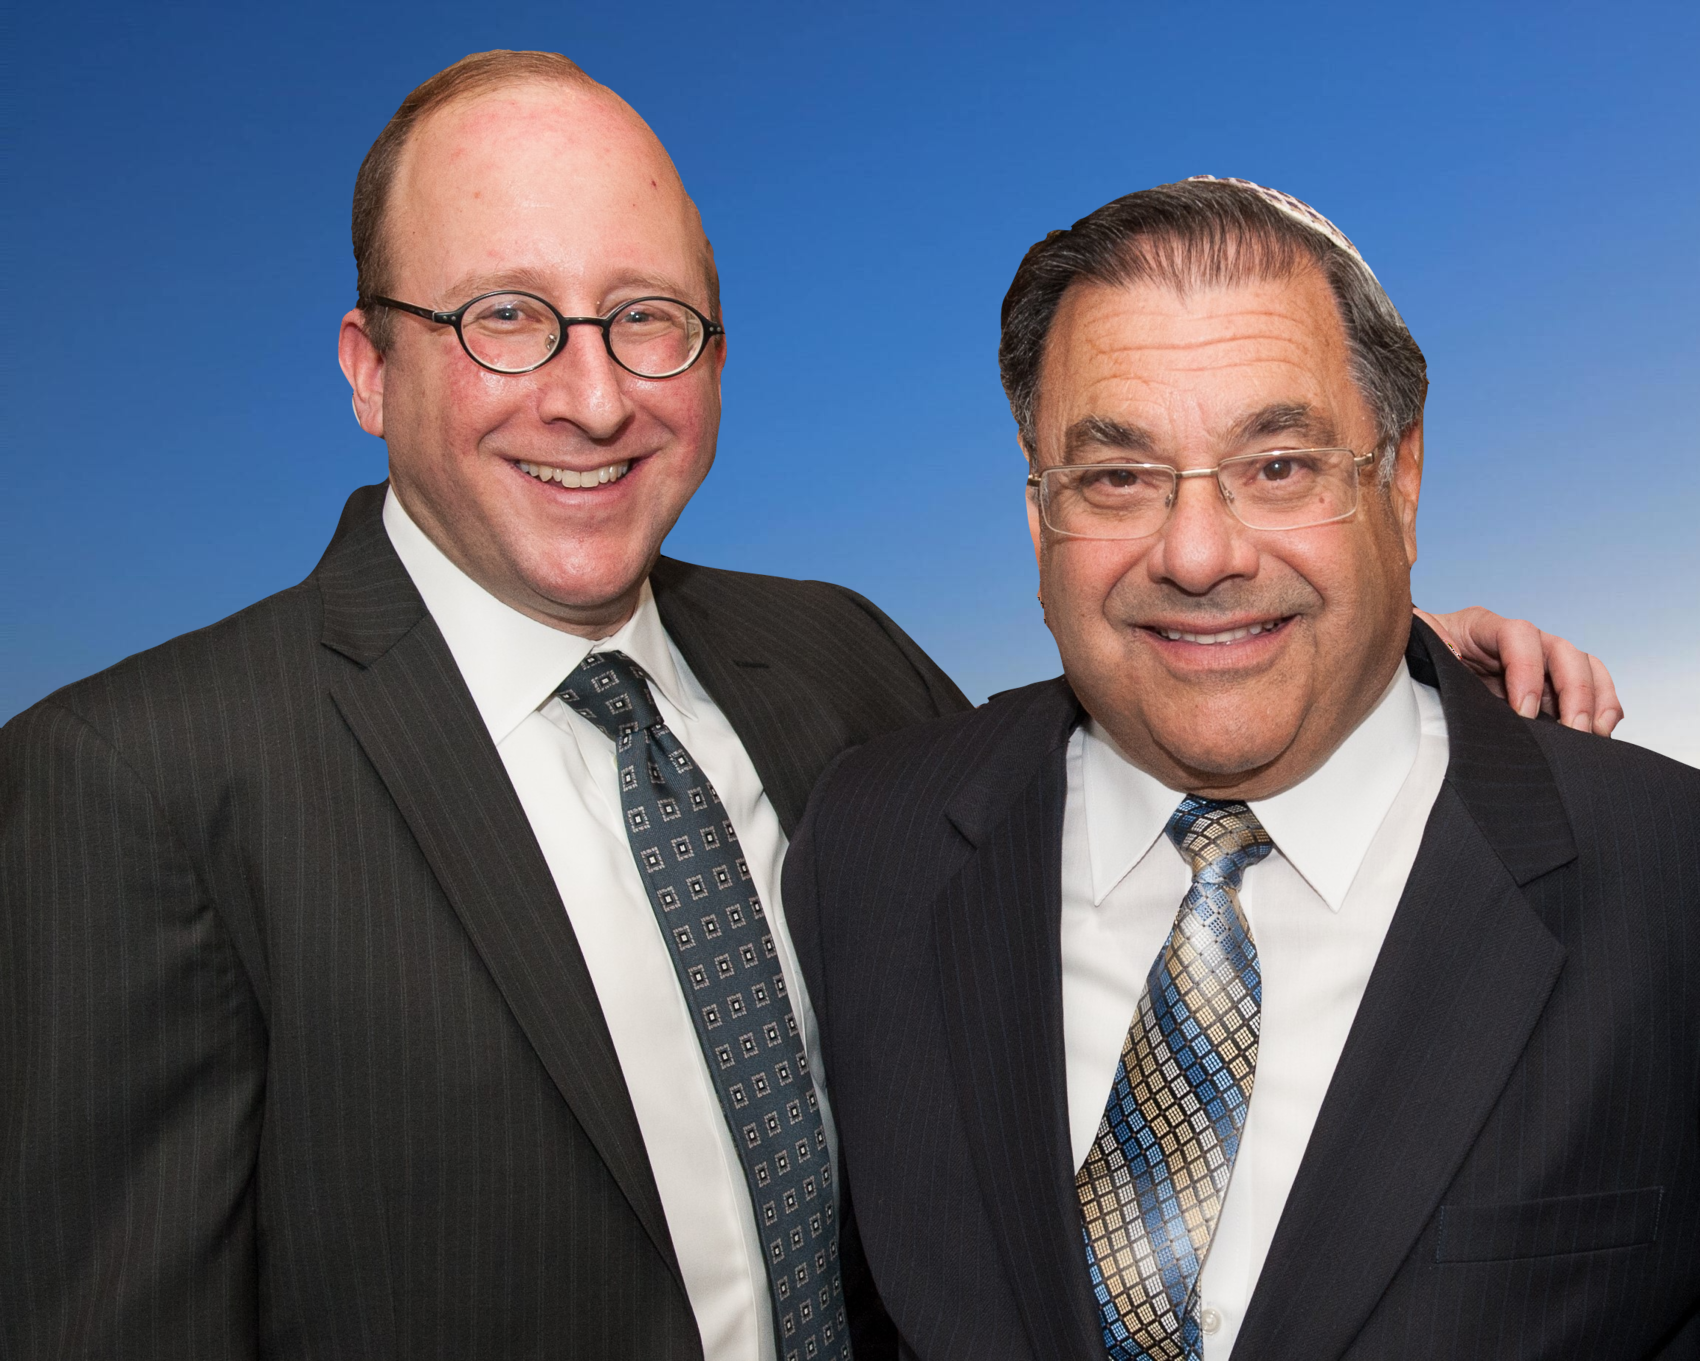 David Moss and Rabbi Shlomo Riskin